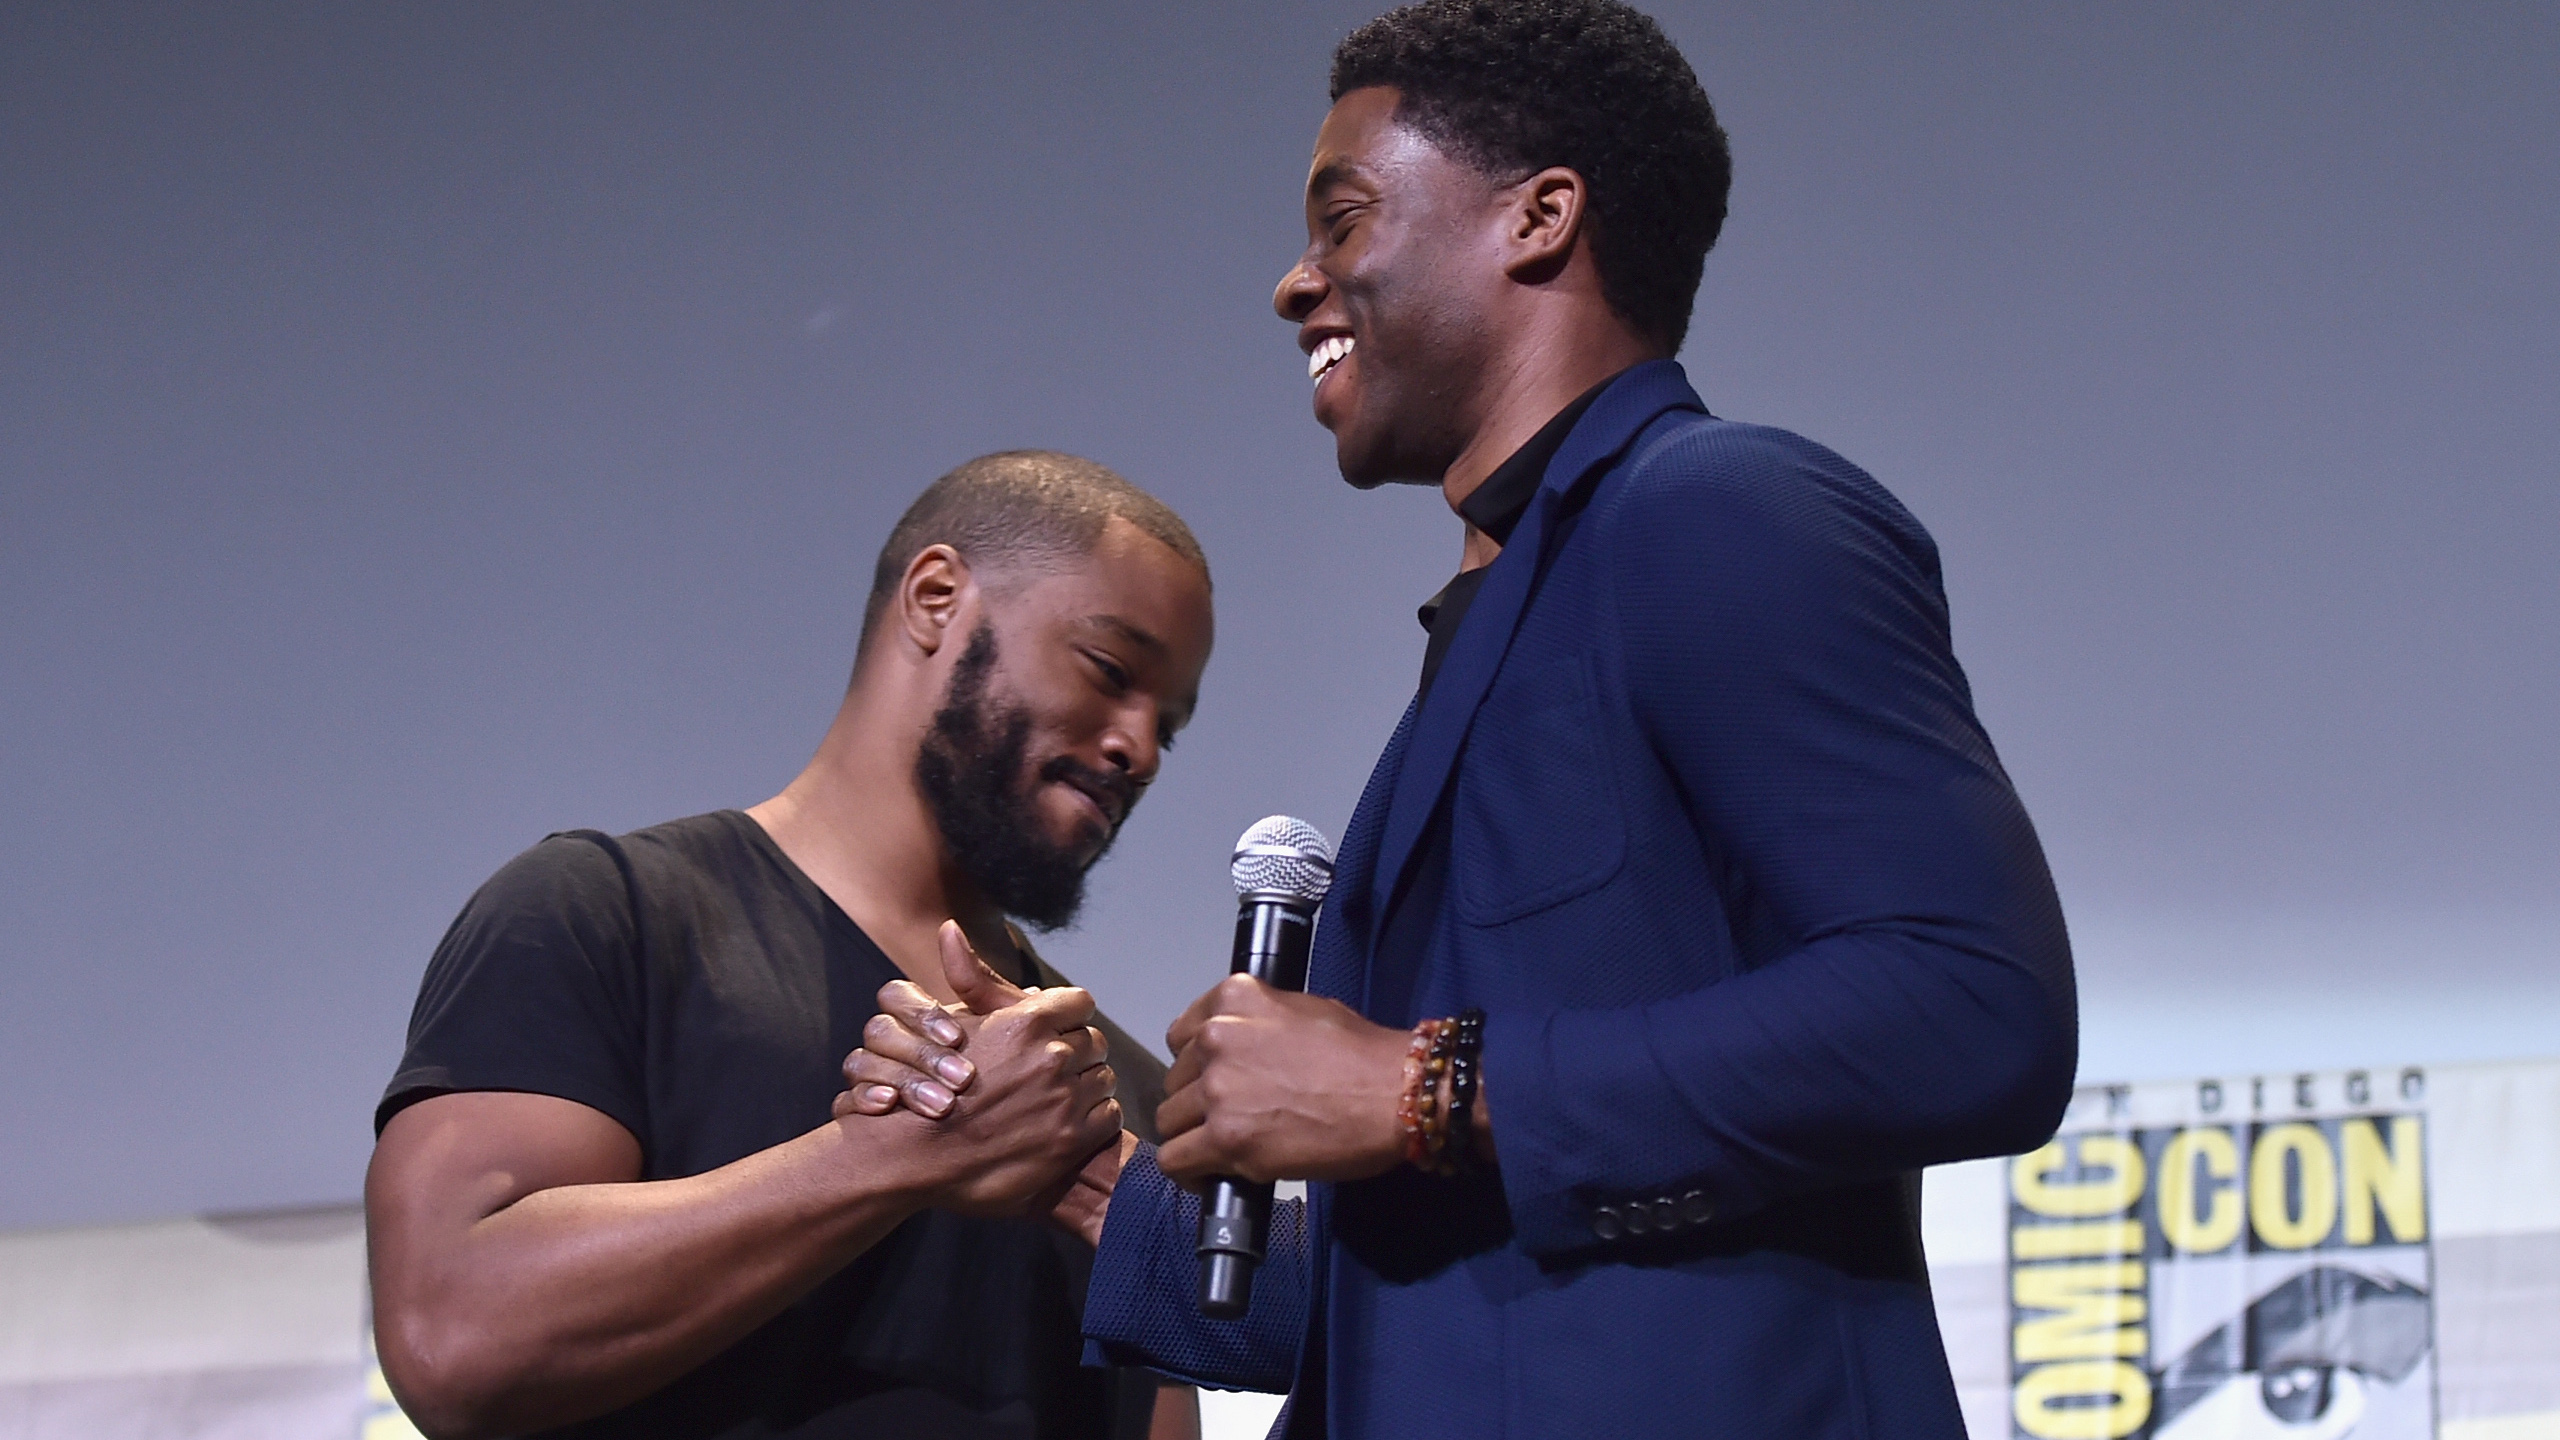 "SAN DIEGO, CA - JULY 23: Director Ryan Coogler (L) and actor Chadwick Boseman from Marvel Studios ""Black Panther attend the San Diego Comic-Con International 2016 Marvel Panel in Hall H on July 23, 2016 in San Diego, California. ©Marvel Studios 2016"